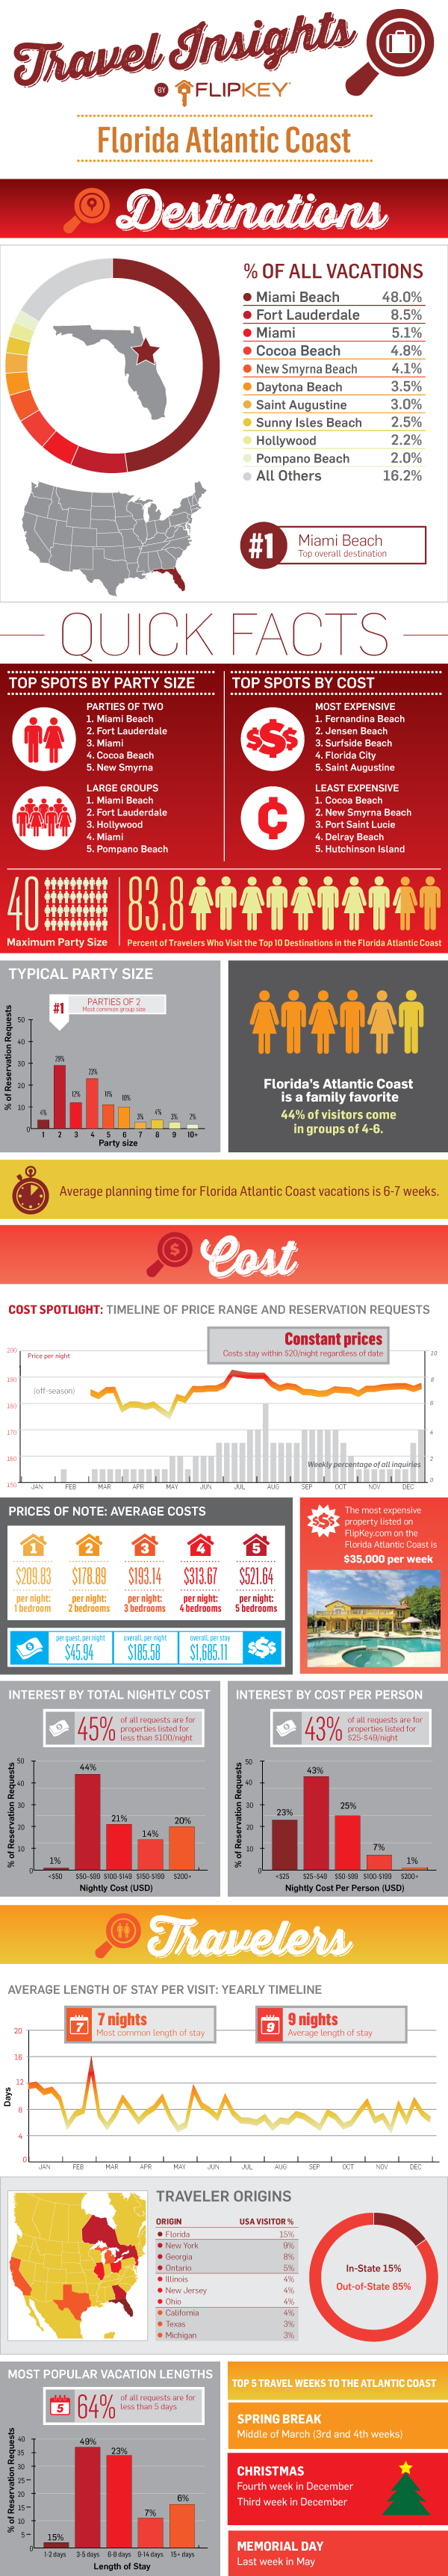 Atlantic Coast Travel Insights Infographics